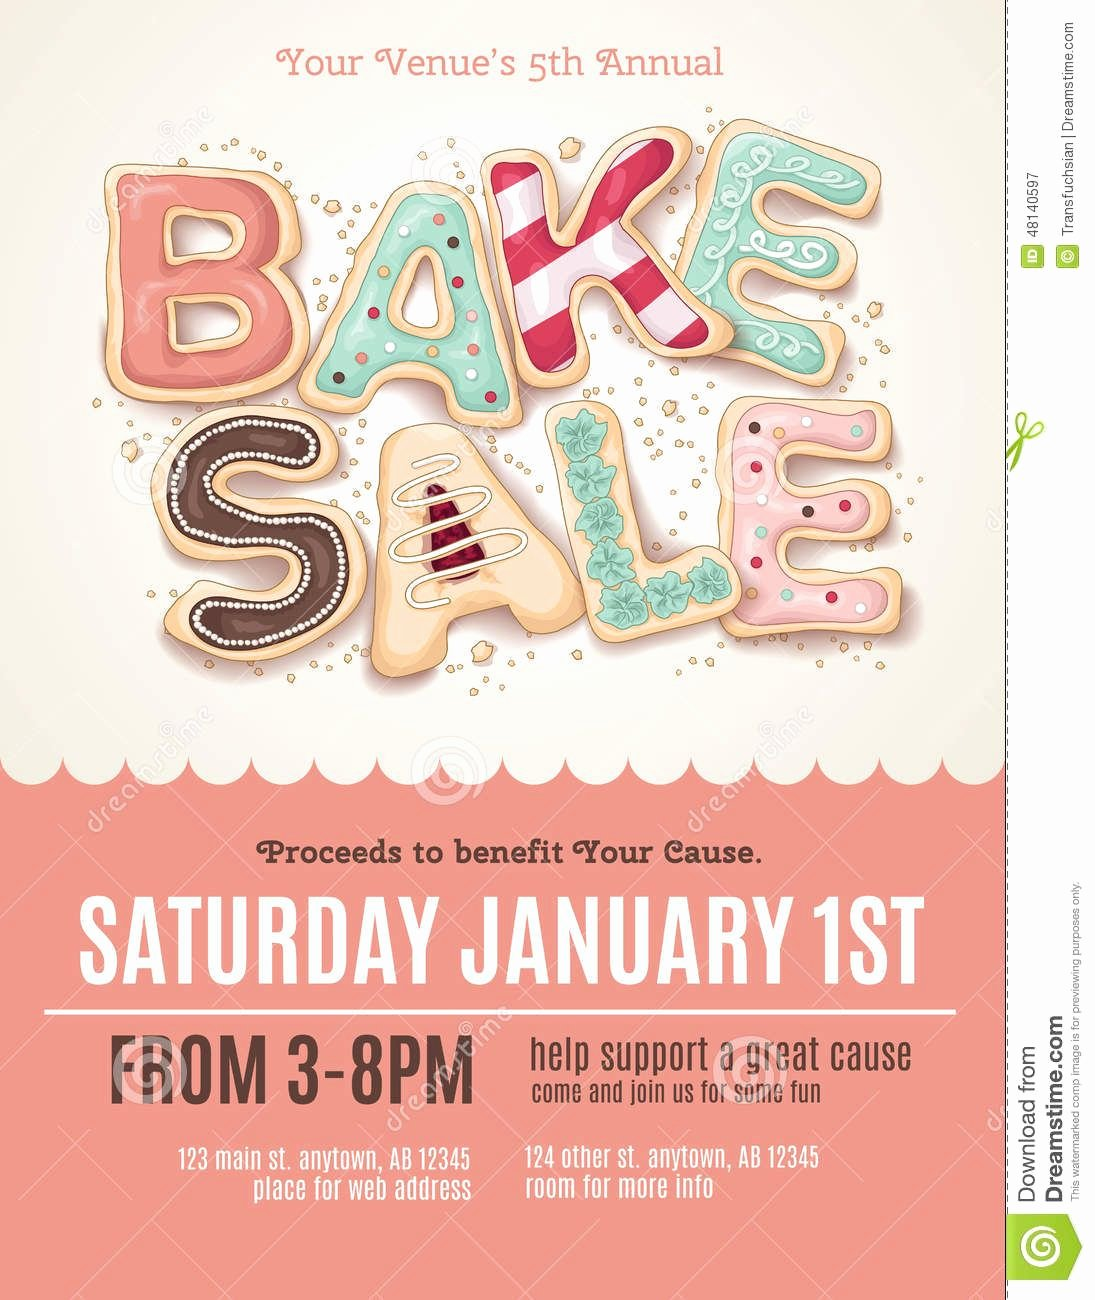 Bake Sale Flyer Template Elegant Fun Cookie Bake Sale Flyer Template Download From Over